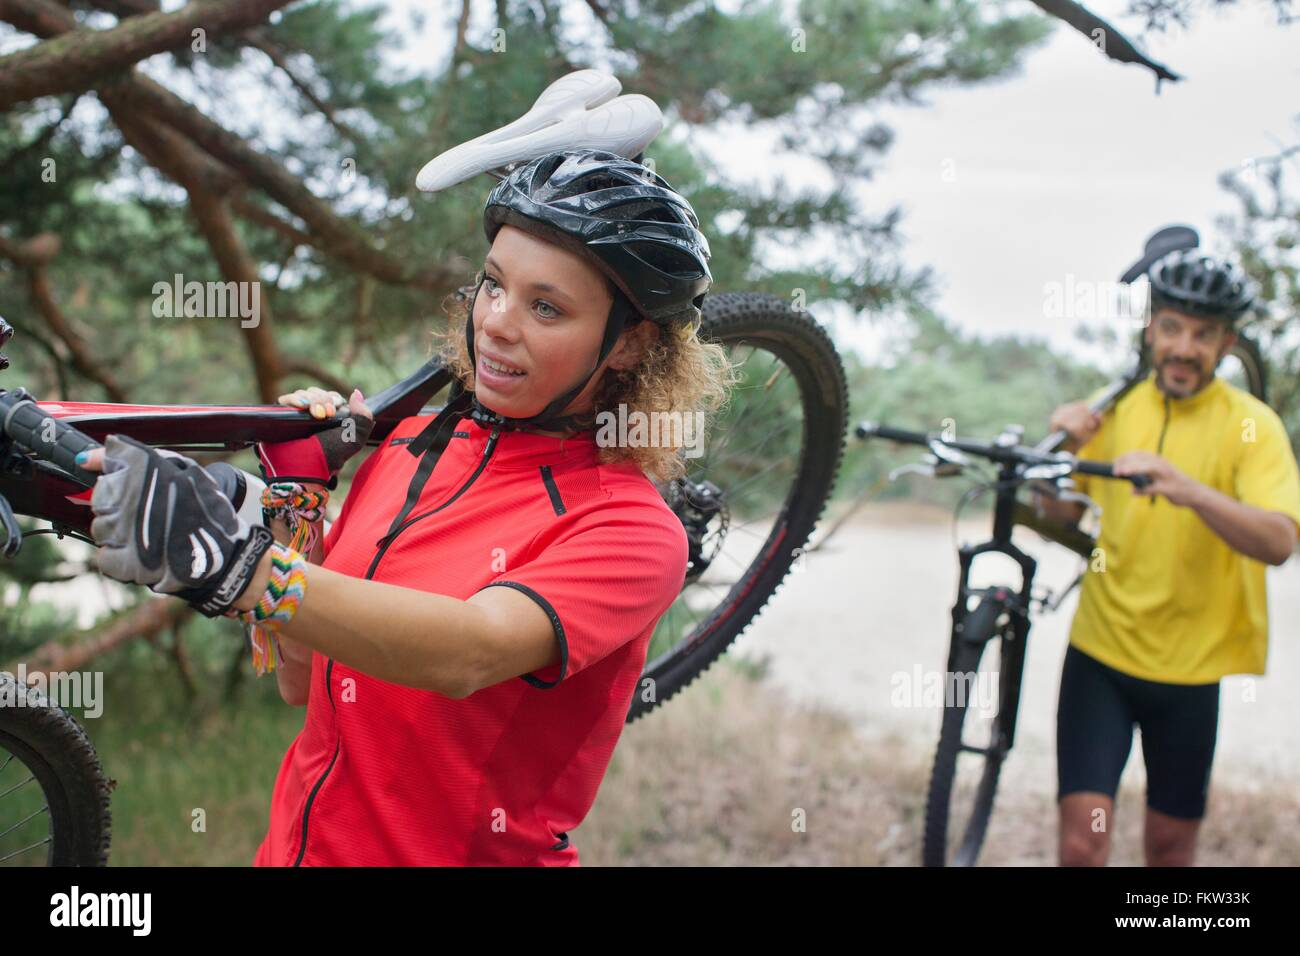 Mountain biking couple carrying cycles over sand on riverbank - Stock Image